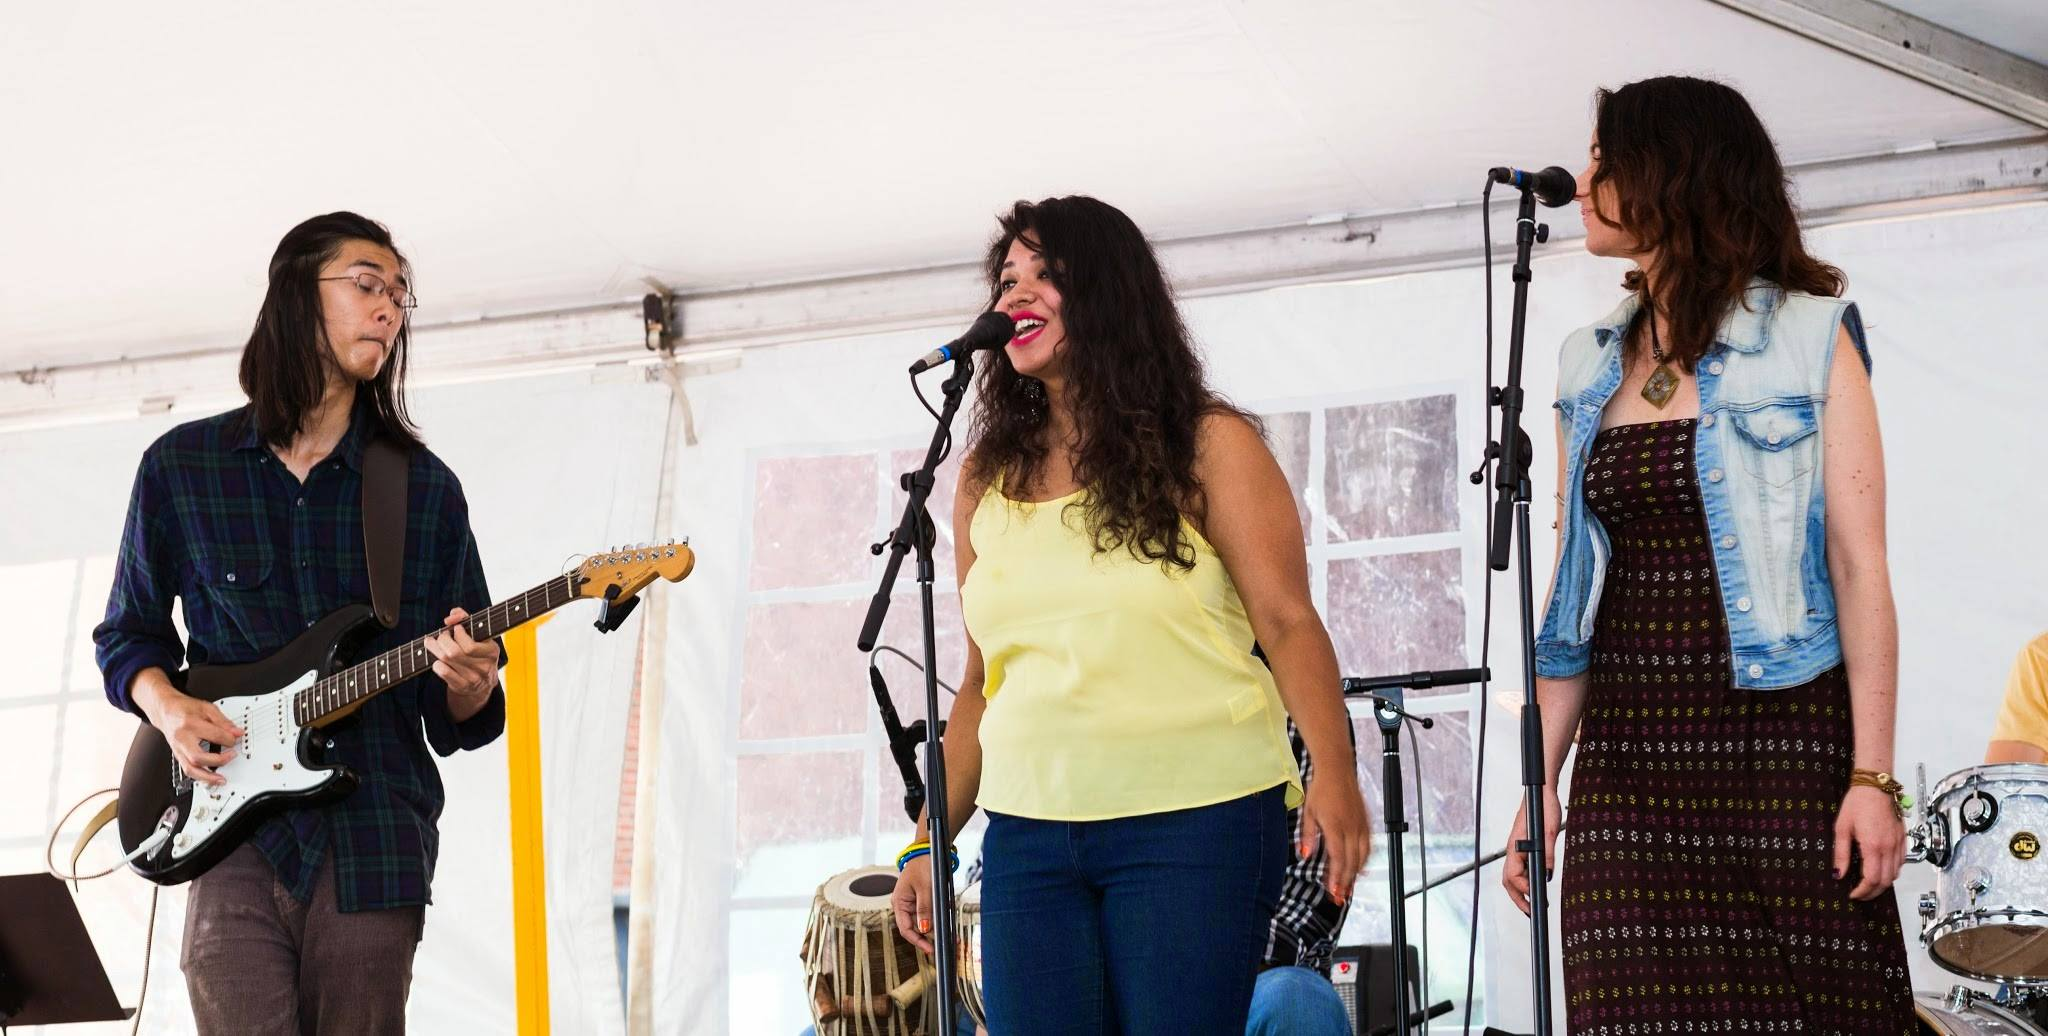 Armeen Musa Live at Greenfest - Boston, MA - July '14